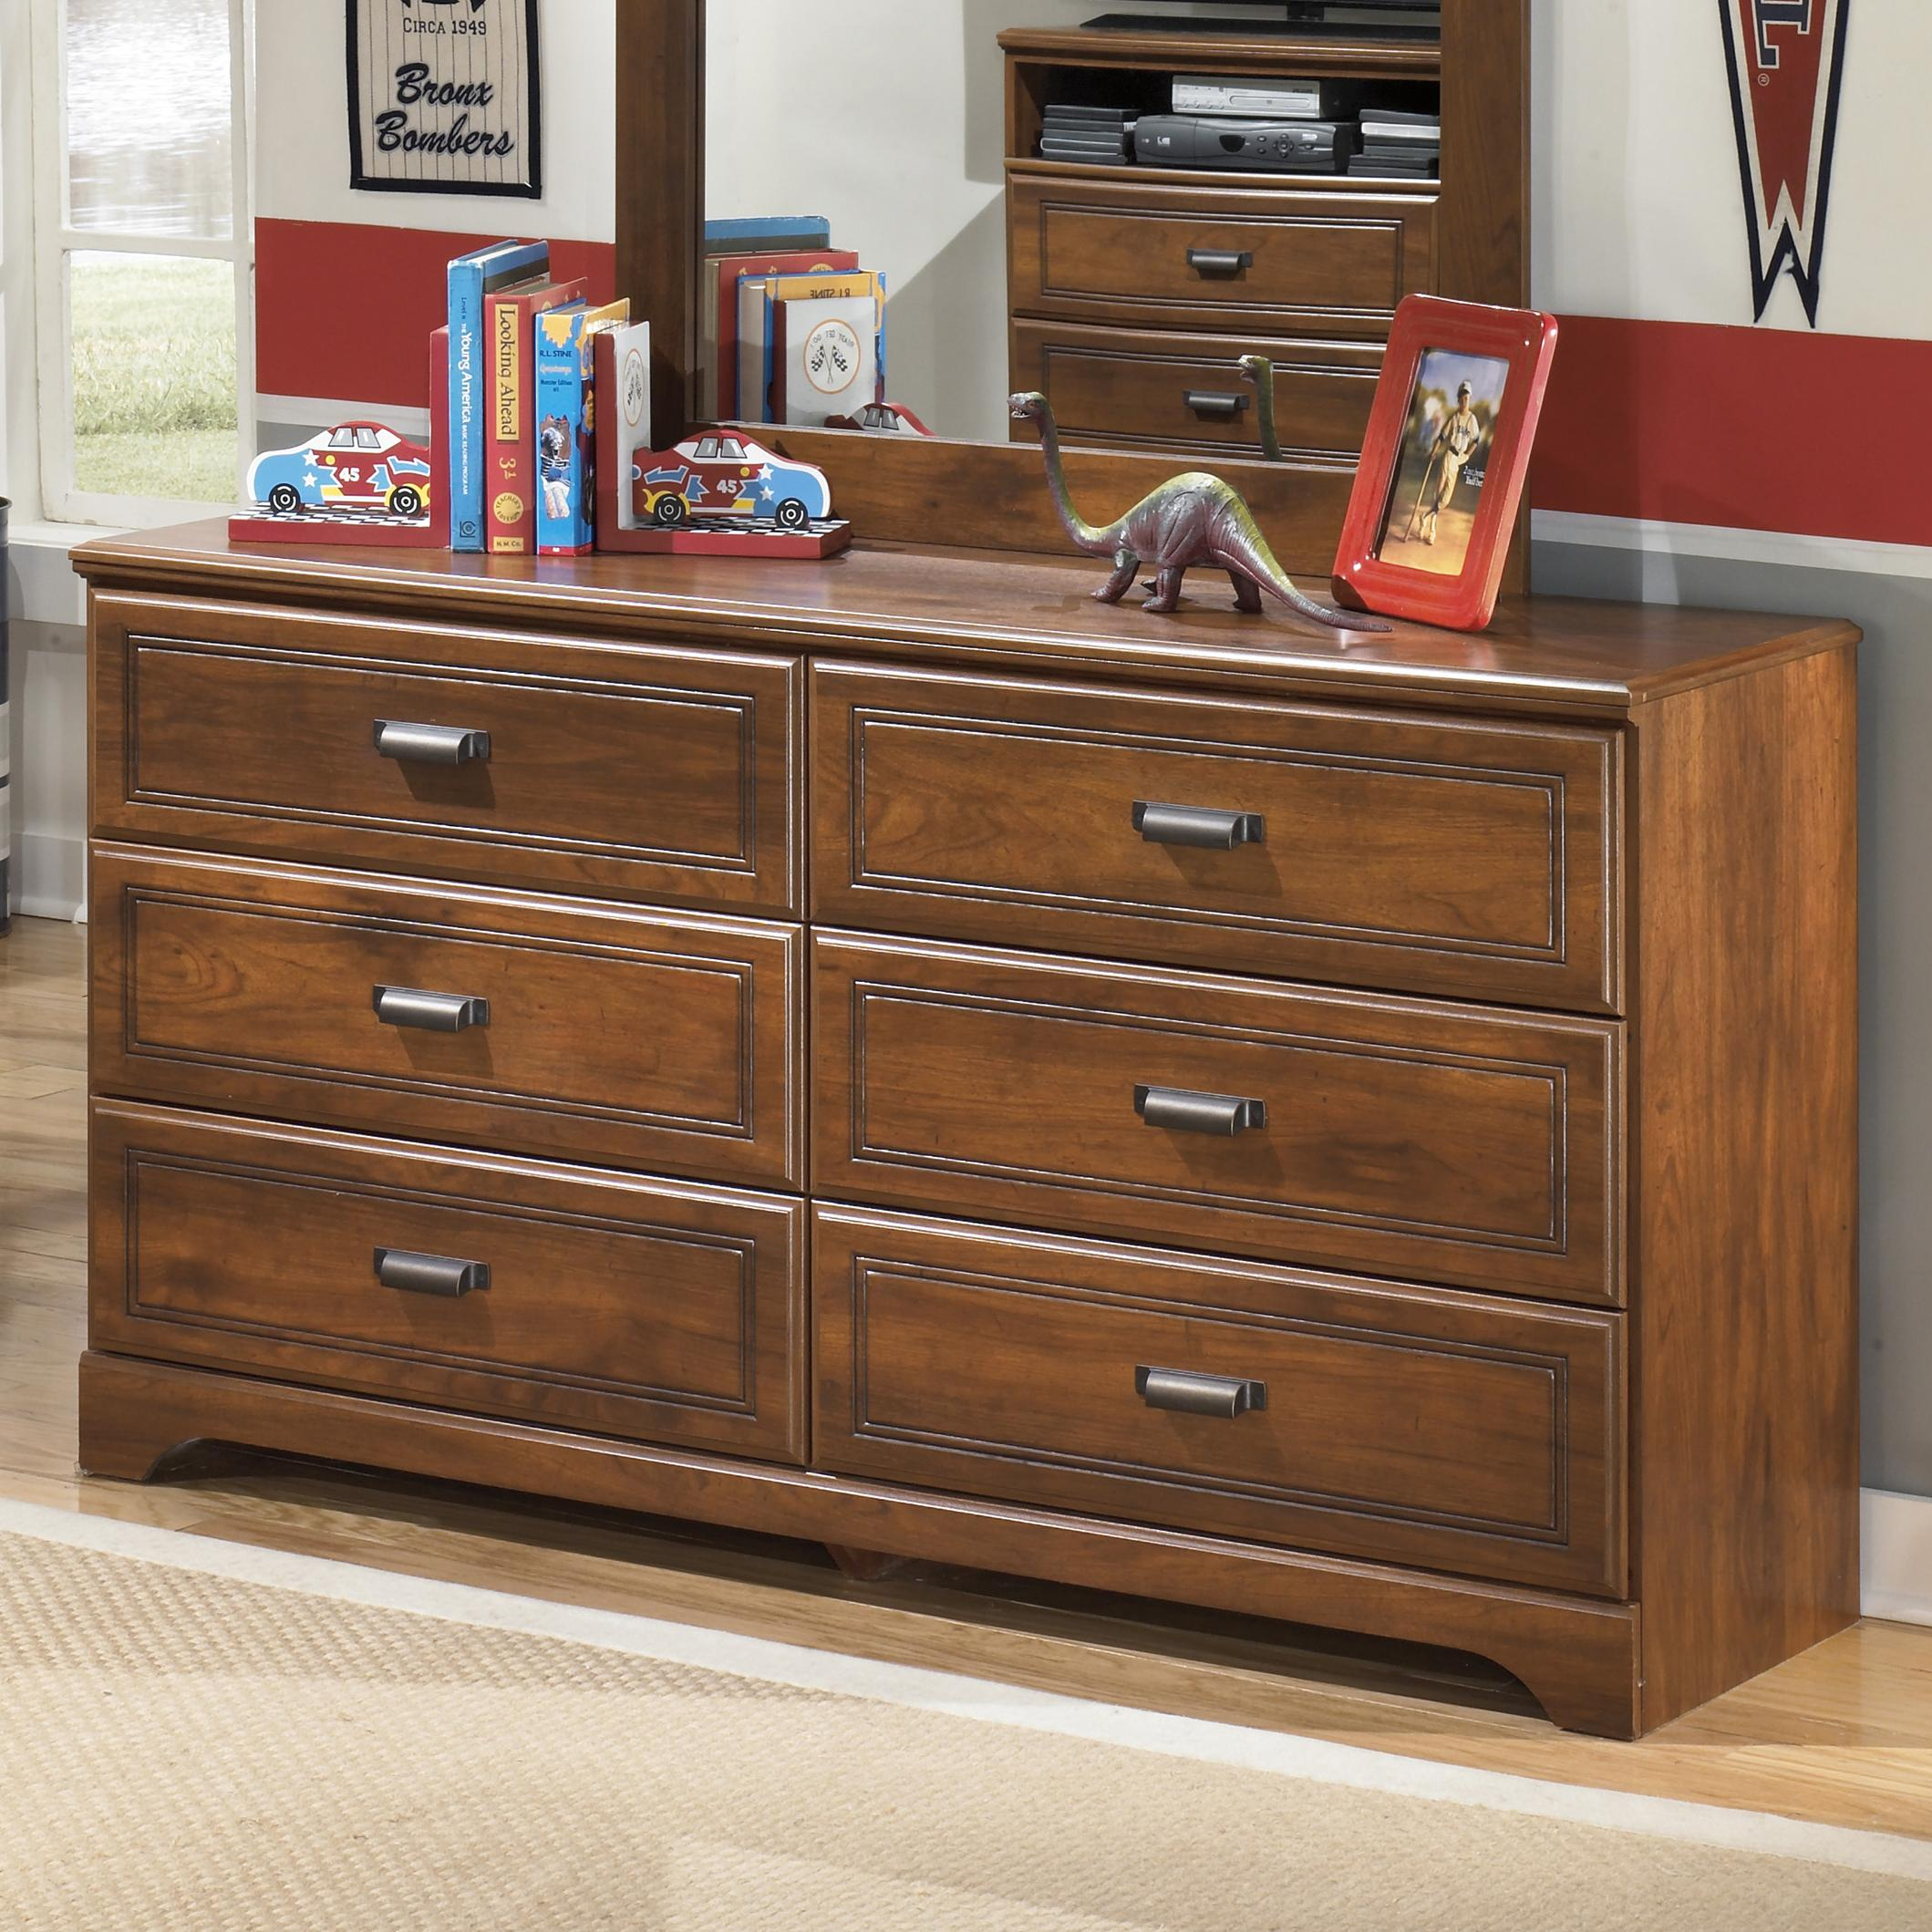 Barchan Dresser by Signature Design by Ashley at Standard Furniture